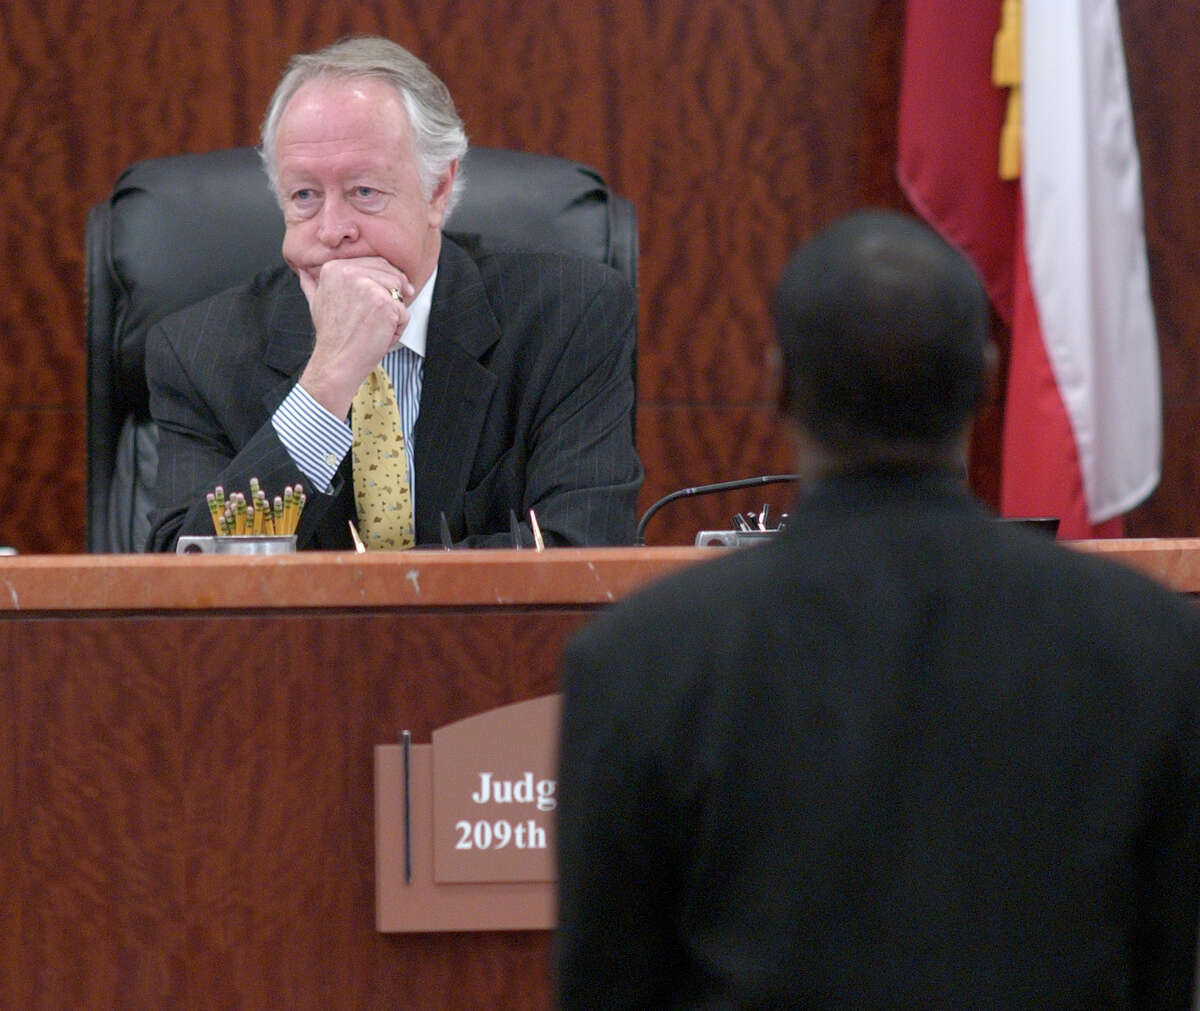 District Criminal Court of Judge Michael McSpadden in 2004 at the Harris County Criminal Justice Center in Houston